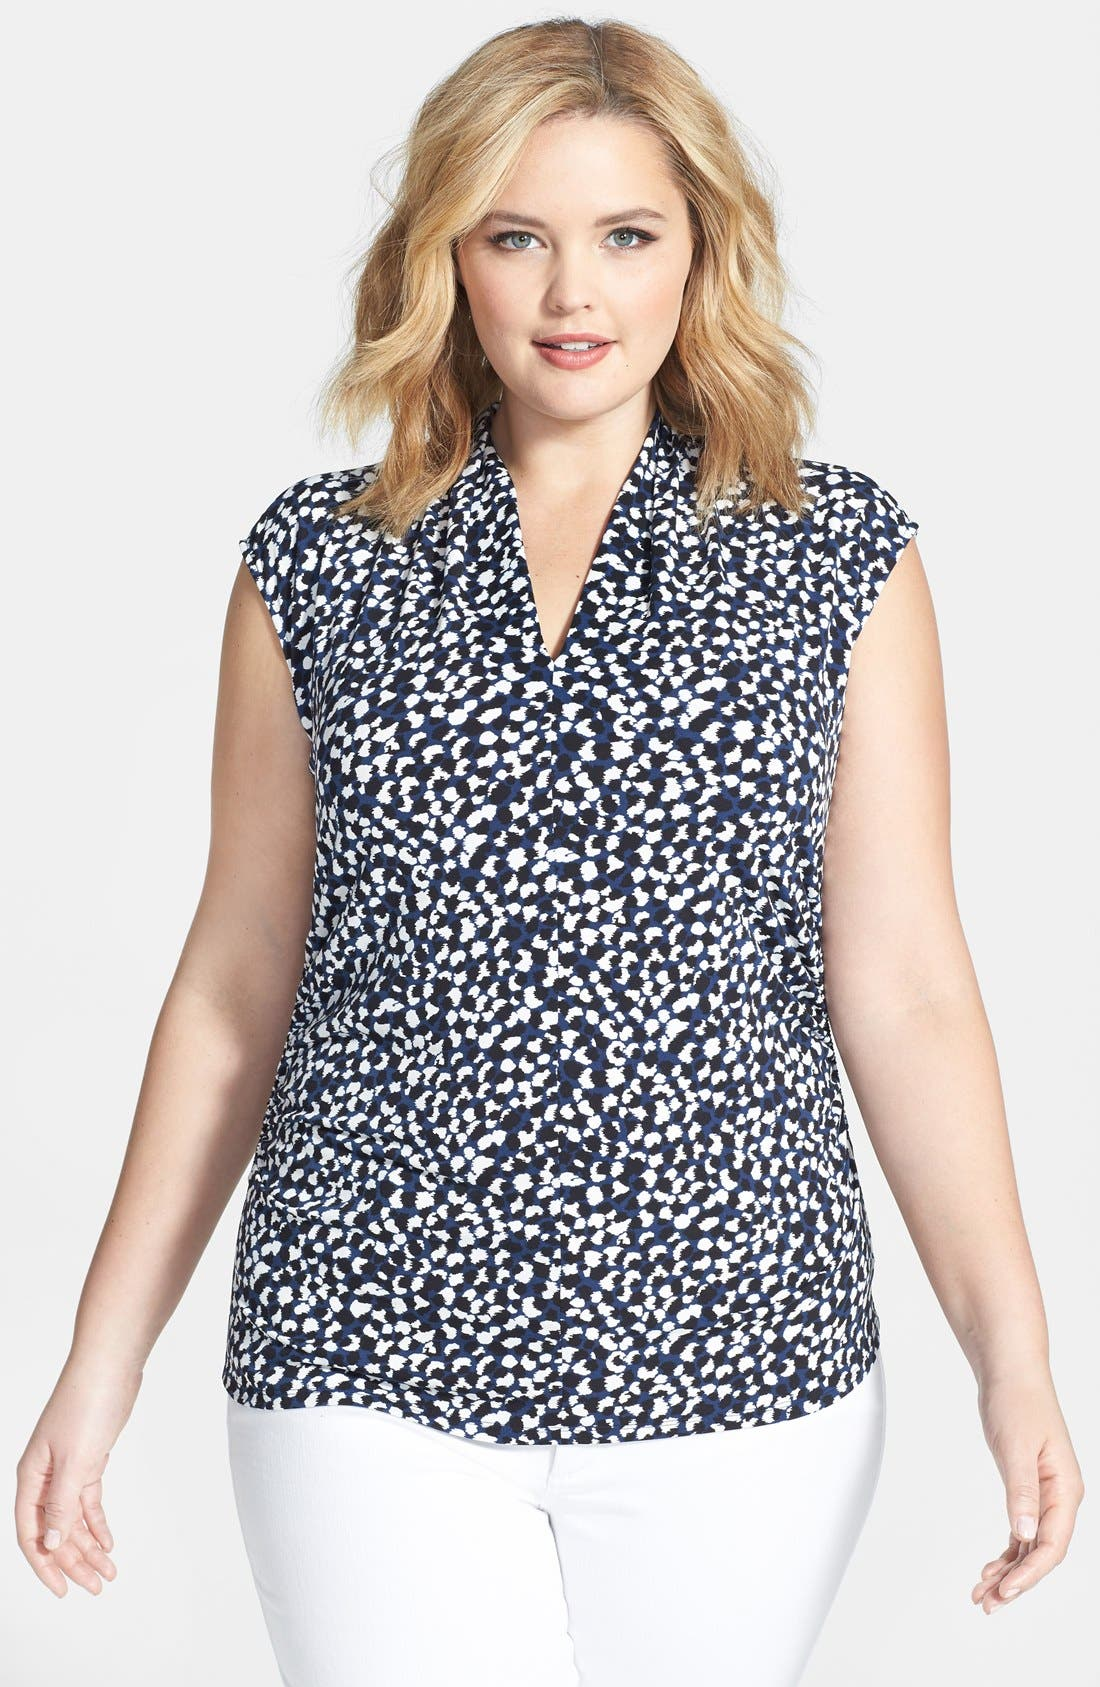 Main Image - Vince Camuto 'Doodle Dabs' Print Pleat Front V-Neck Top (Plus Size)